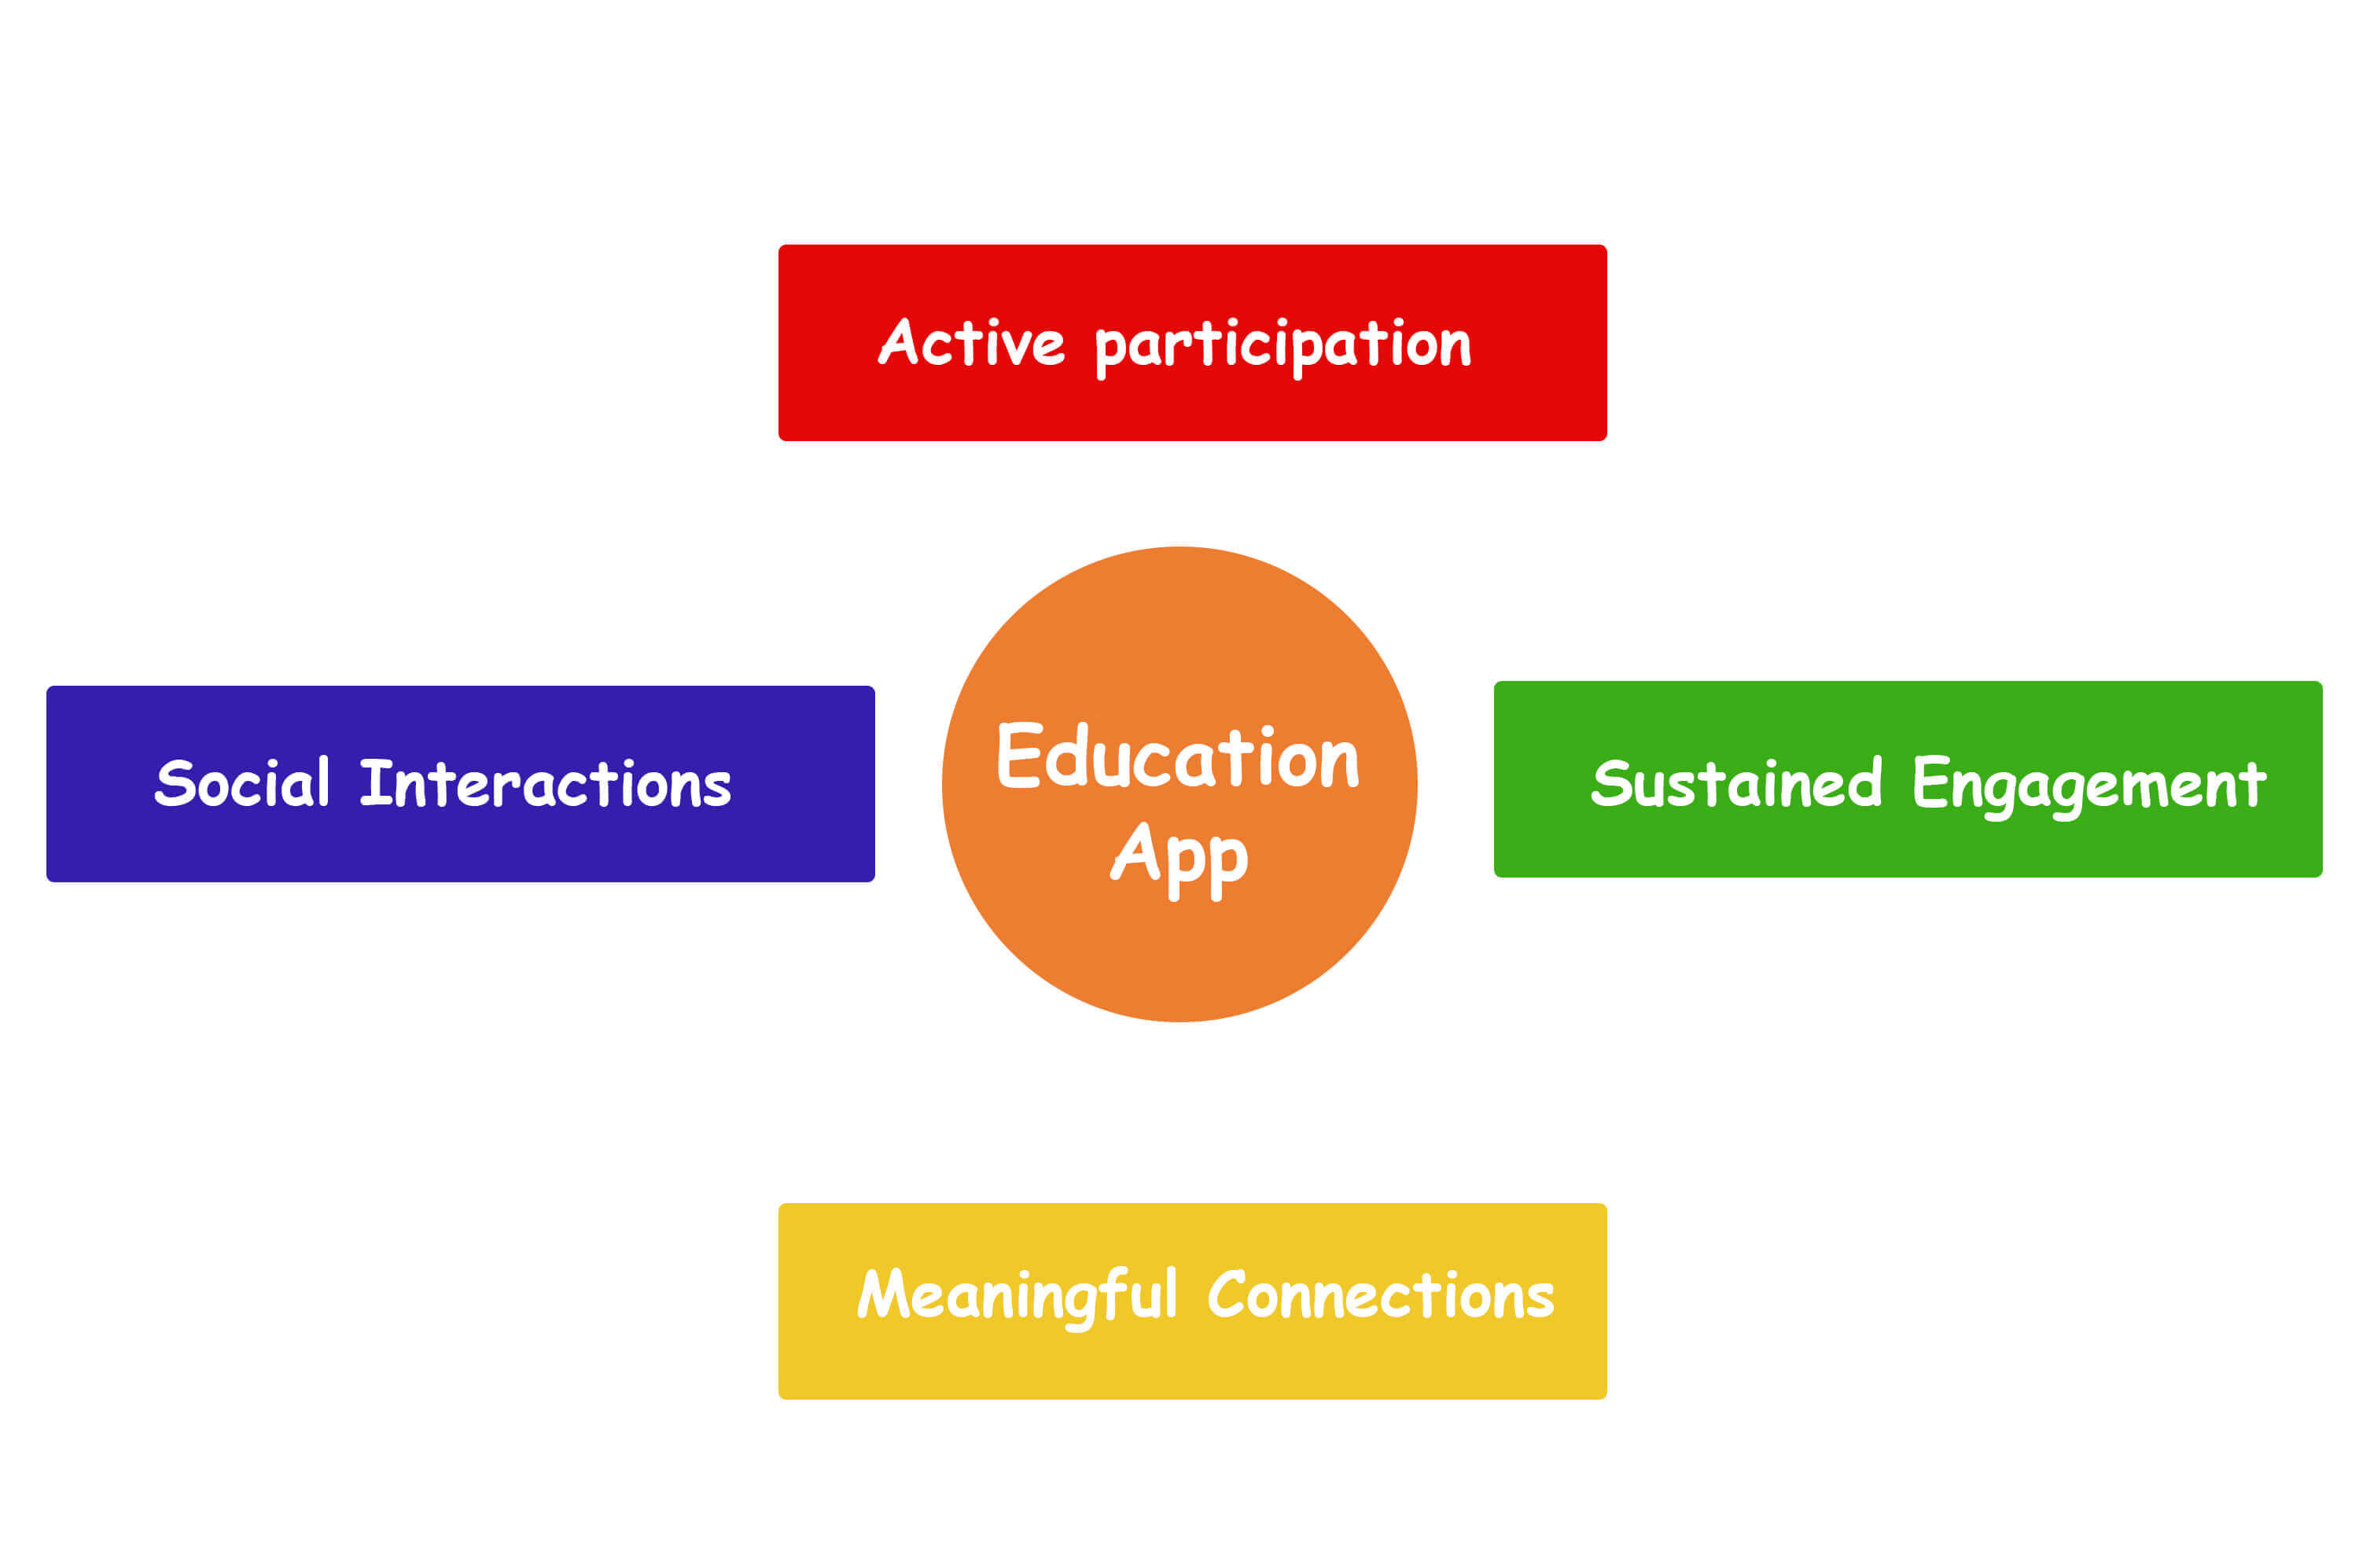 image describes four components of educational apps